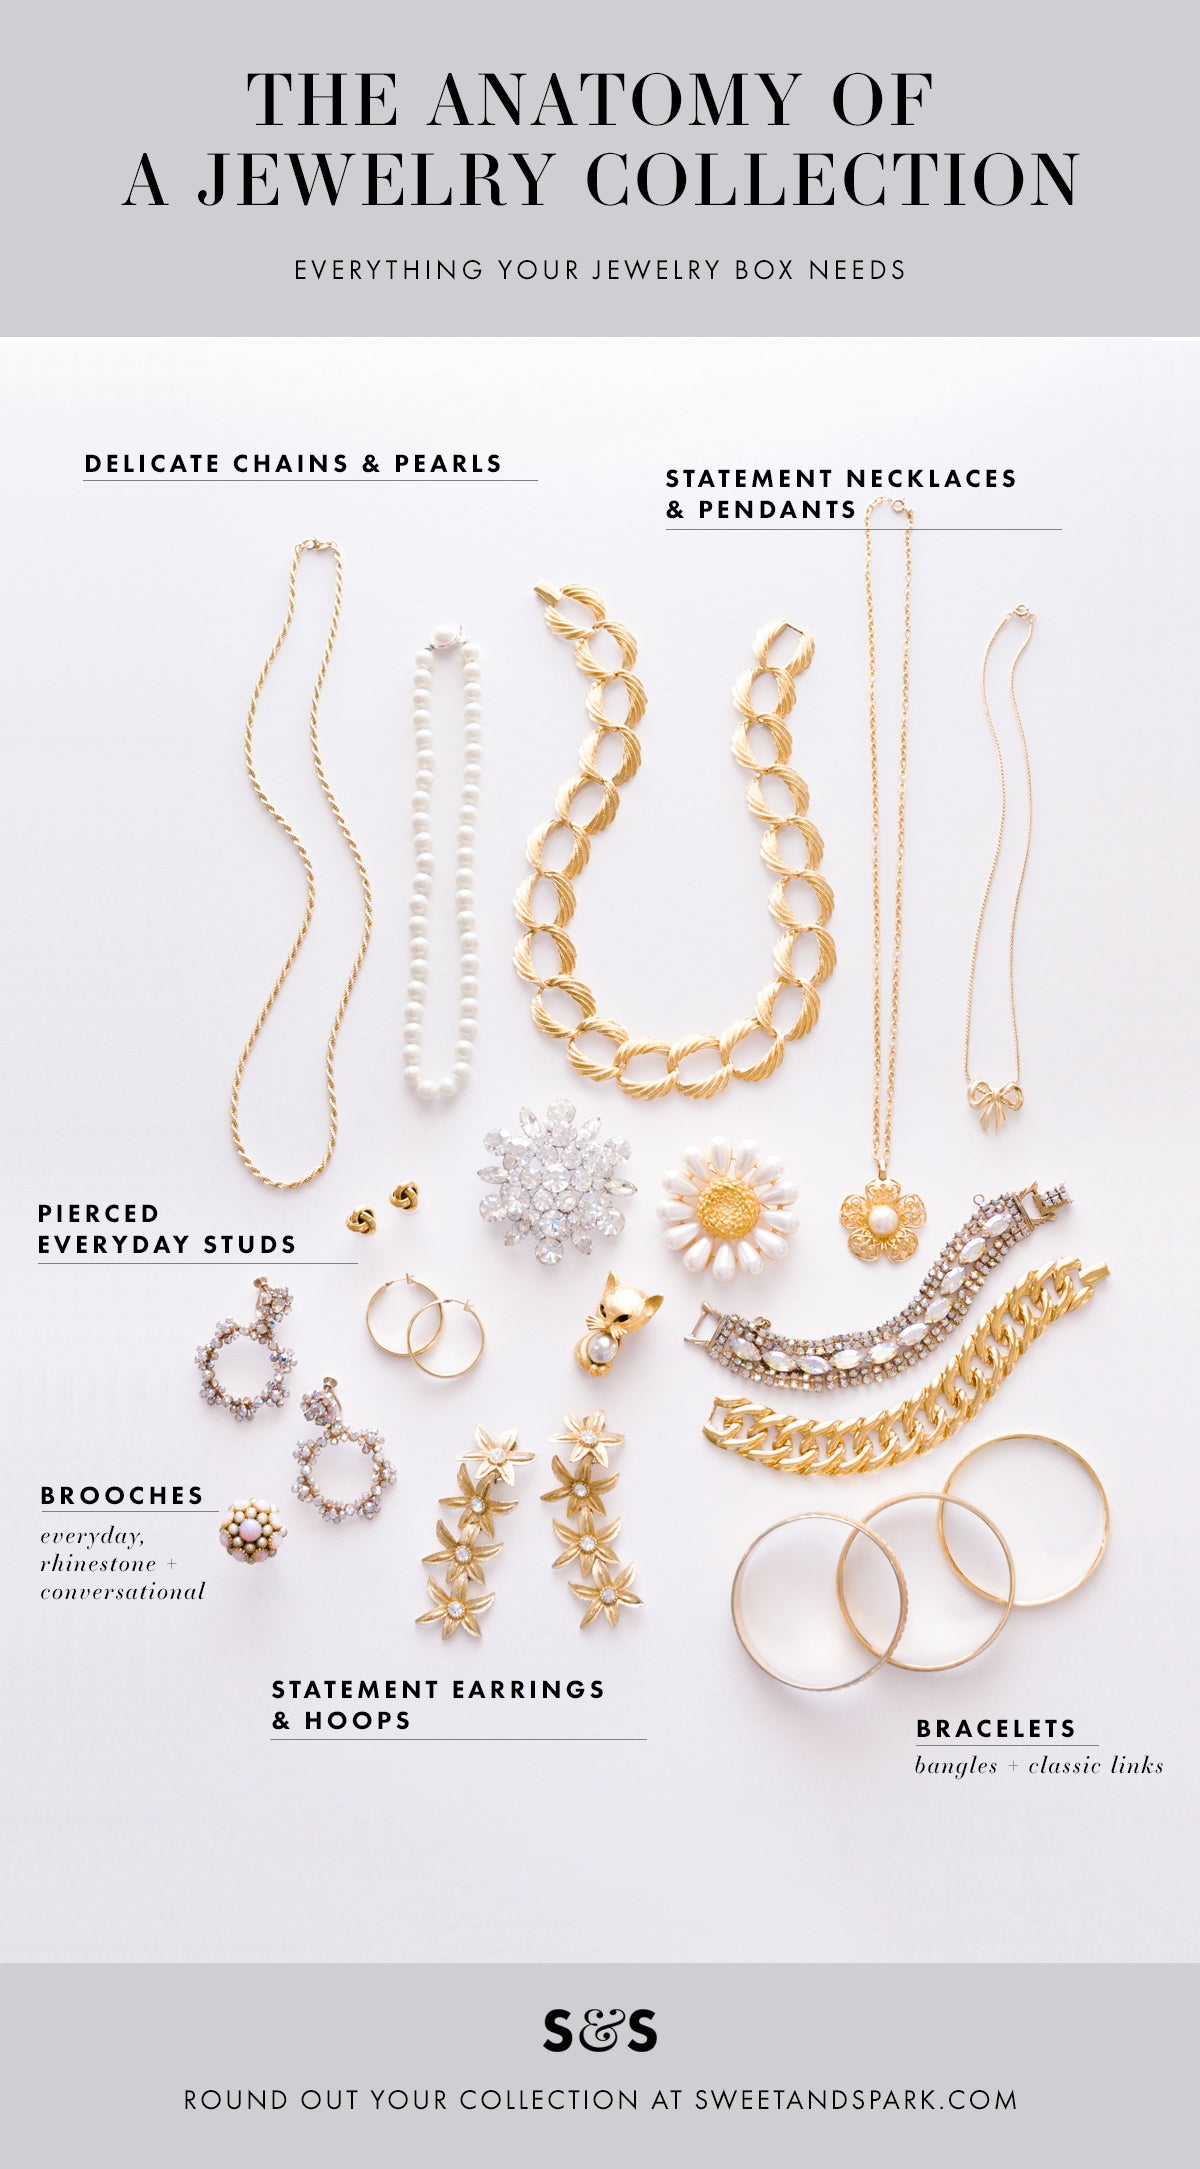 Anatomy of a jewelry collection from Sweet & Spark.